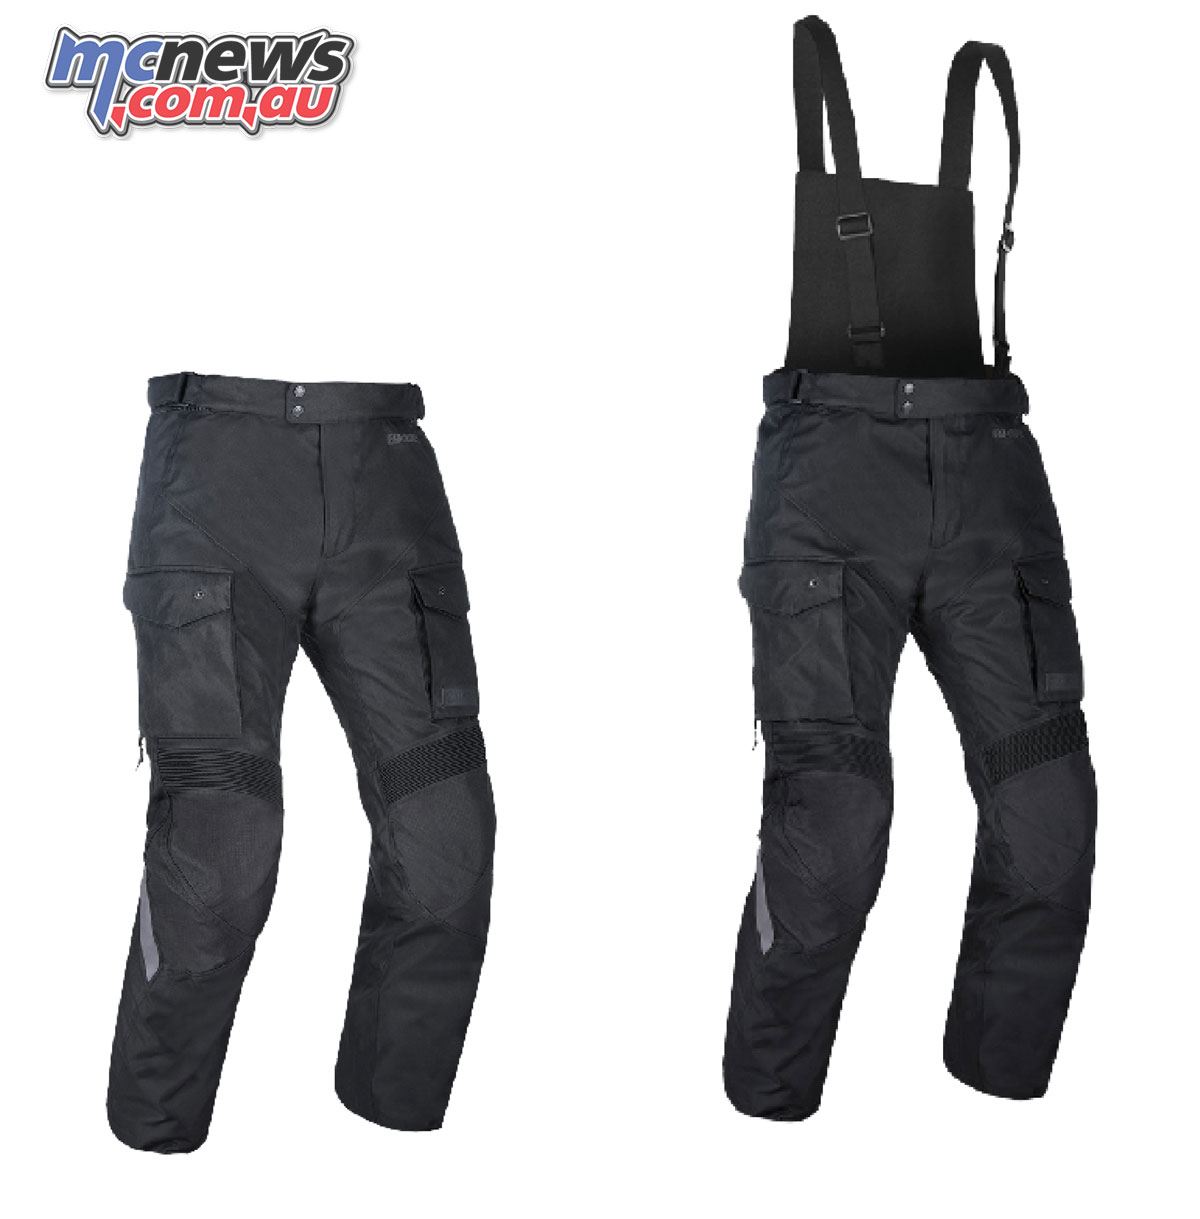 Oxford continental pants strap front